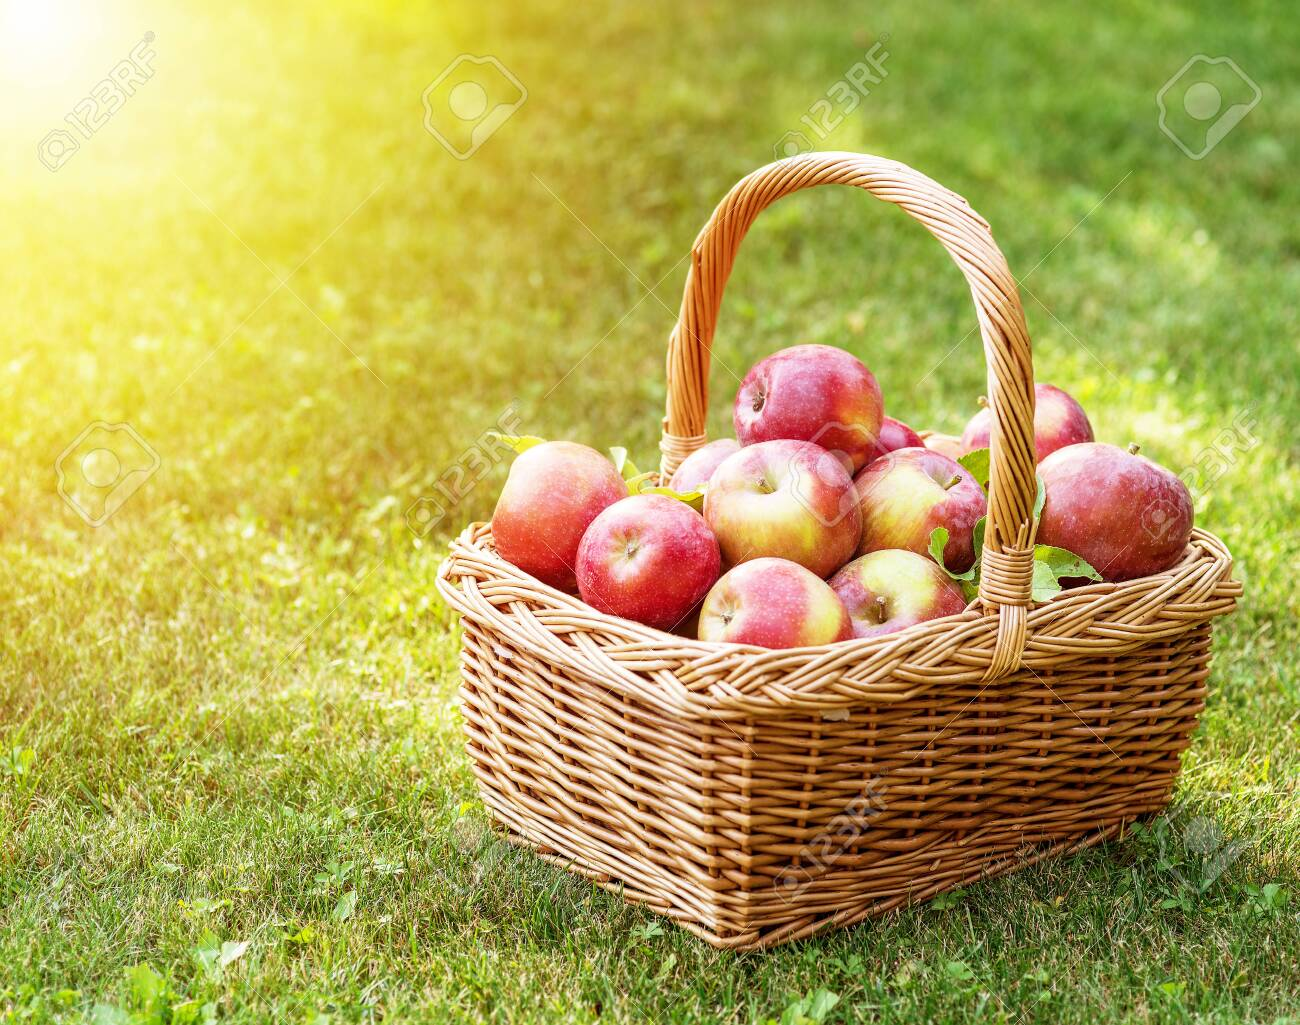 Apple harvest. Ripe red apples in the basket on the green grass. - 120617626